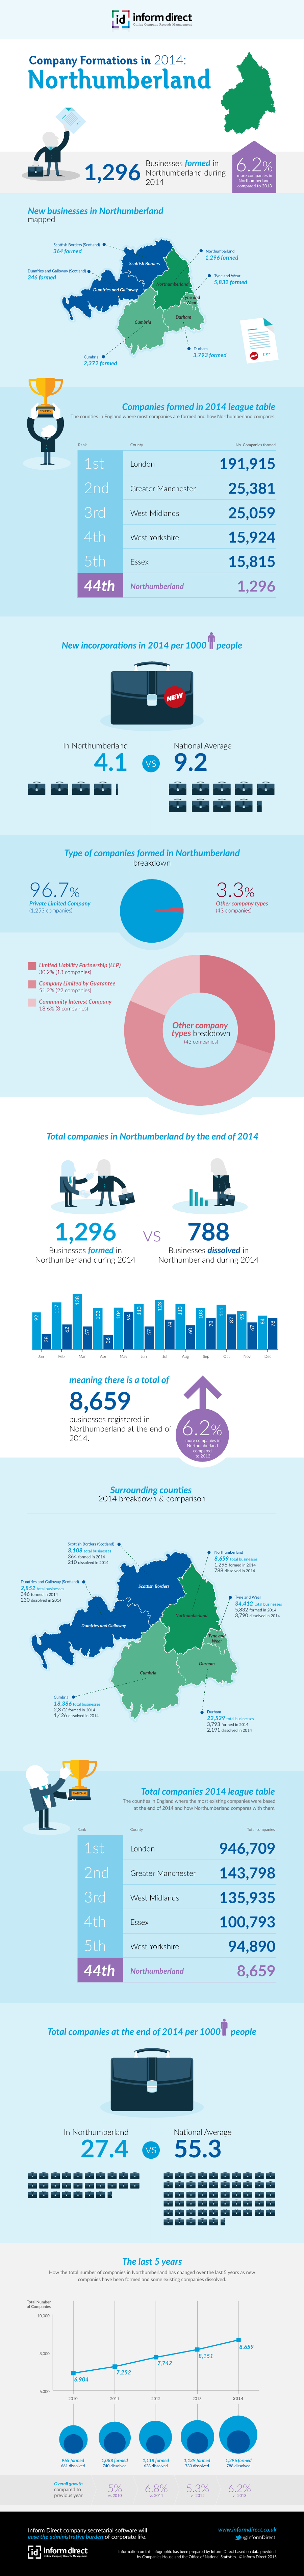 Inform Direct - Company Formations in Northumberland 2014 Infographic